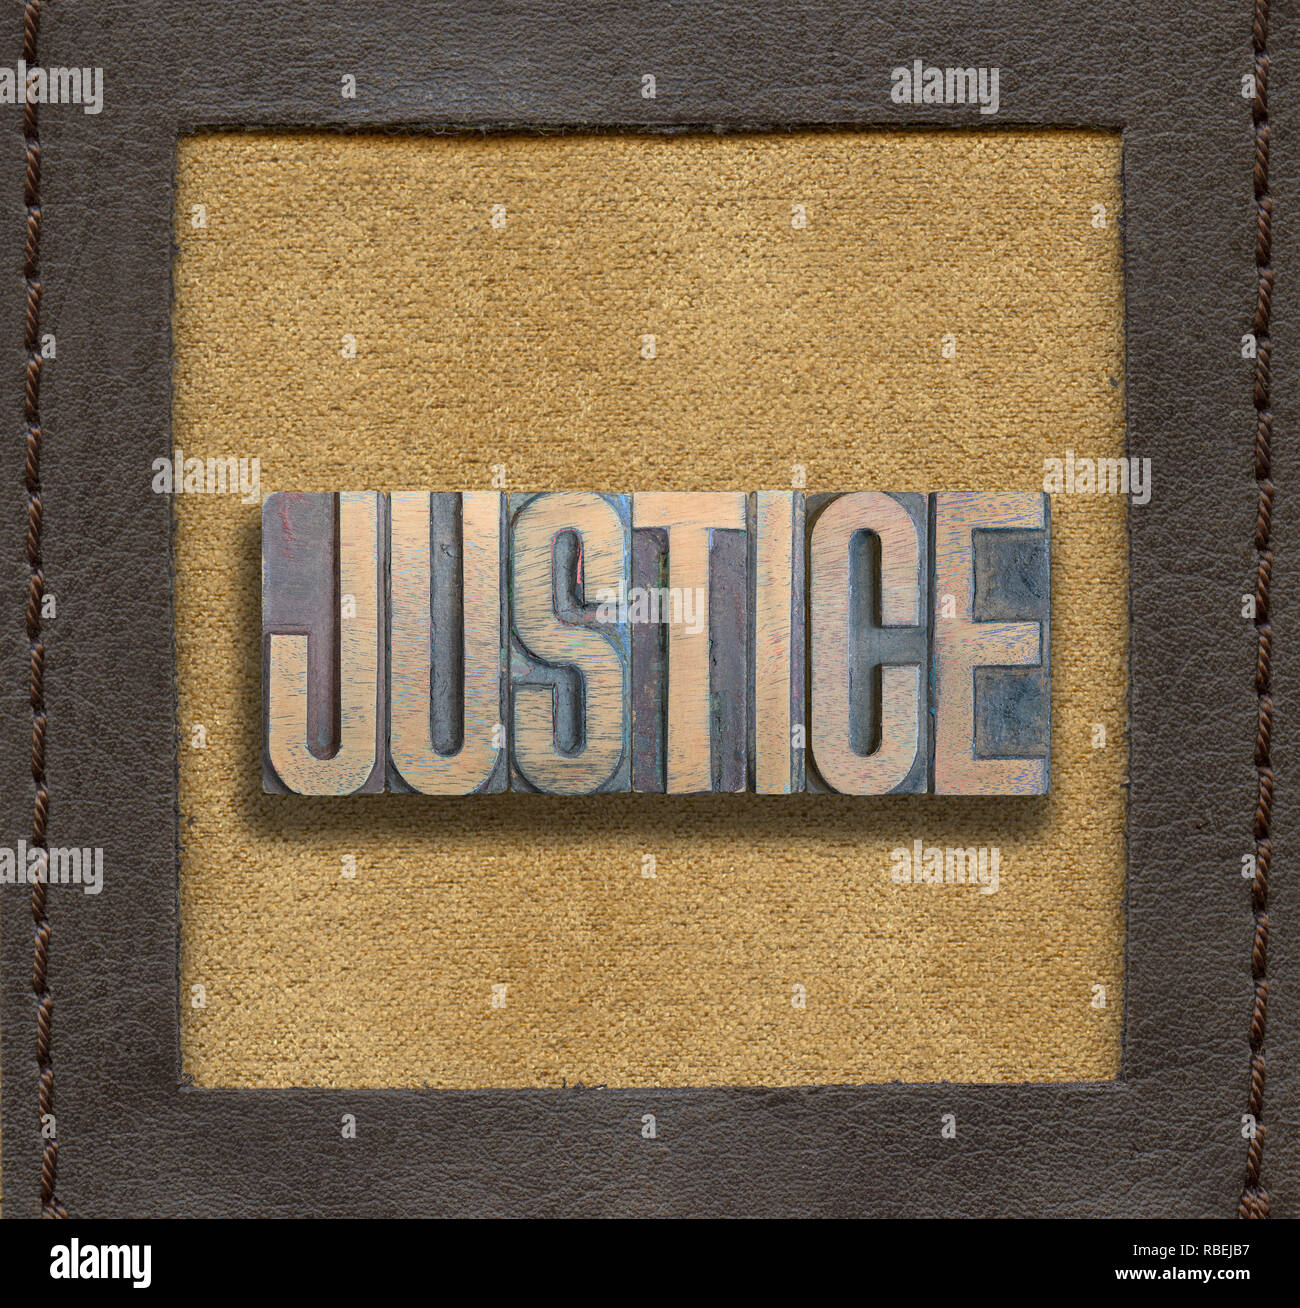 justice word assembled from vintage wooden letterpress inside stitched leather frame - Stock Image